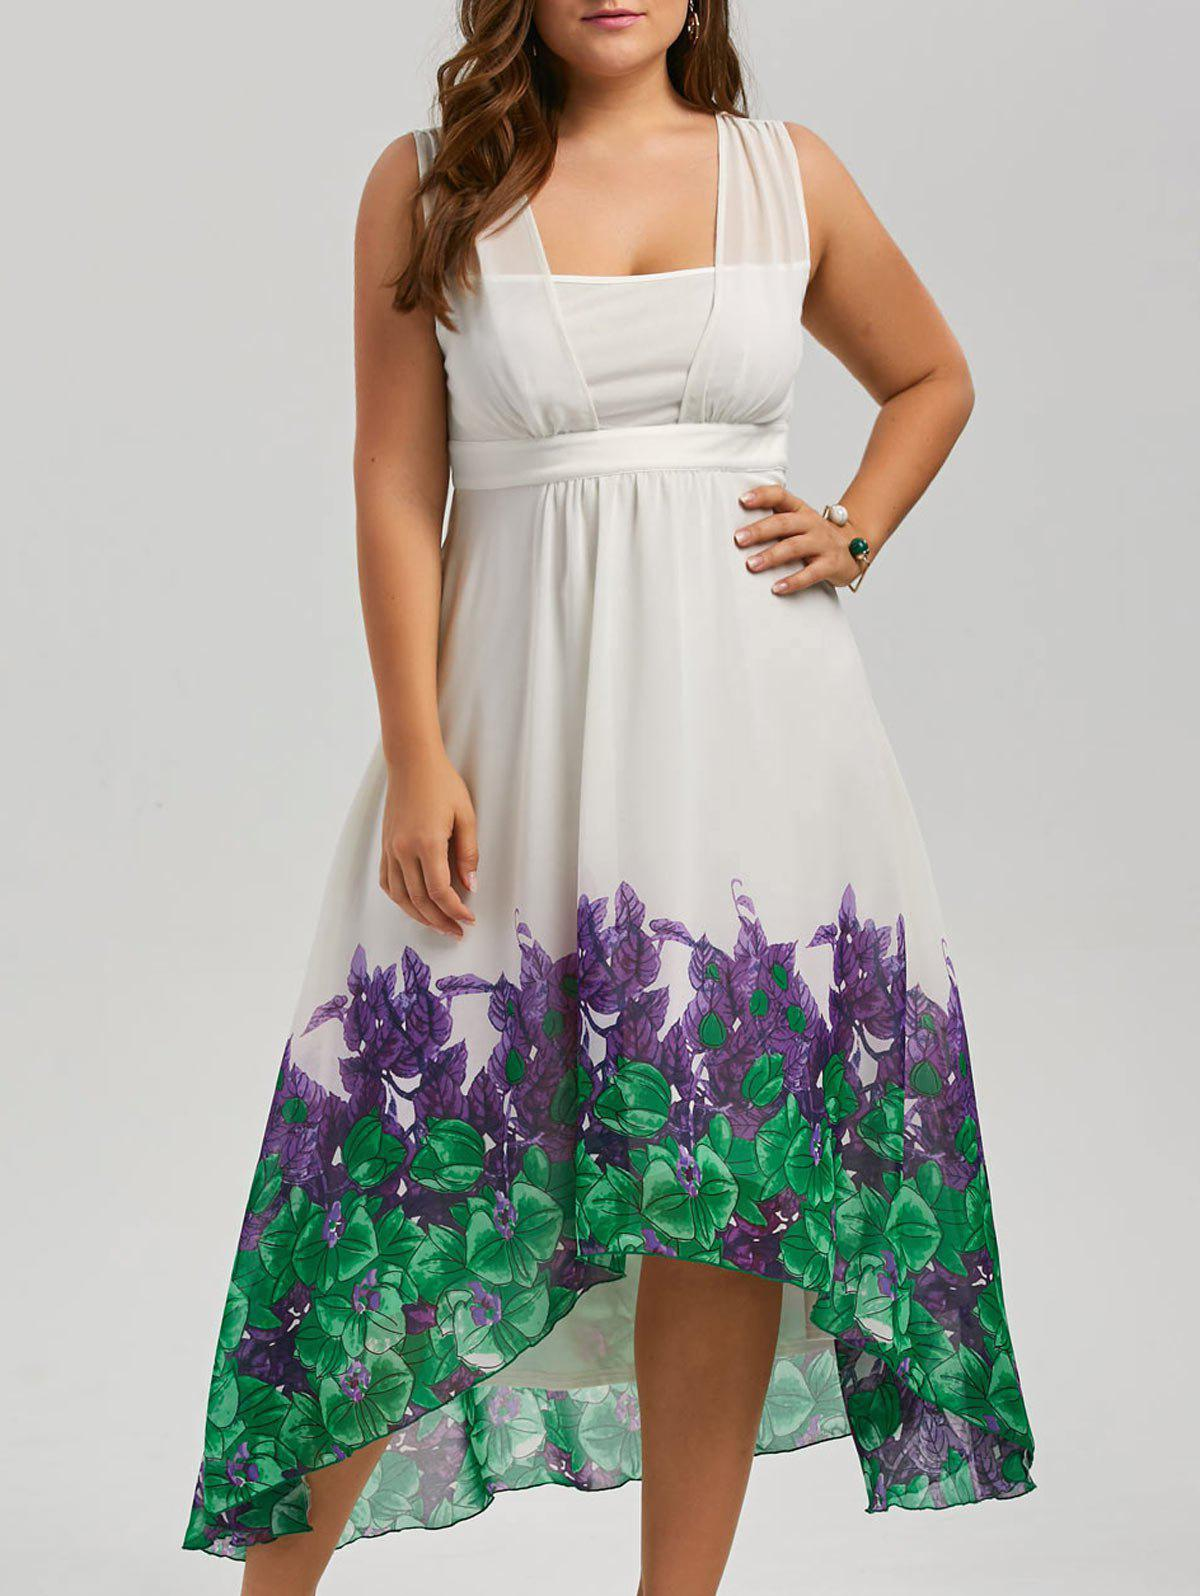 Plus Size Beach Printed Chiffon Long Flowy DressWOMEN<br><br>Size: 3XL; Color: WHITE; Style: Casual; Material: Polyester; Silhouette: Beach; Dresses Length: Mid-Calf; Neckline: Square Collar; Sleeve Length: Sleeveless; Waist: Empire; Pattern Type: Plant,Print; With Belt: No; Season: Spring,Summer; Weight: 0.3500kg; Package Contents: 1 x Dress;